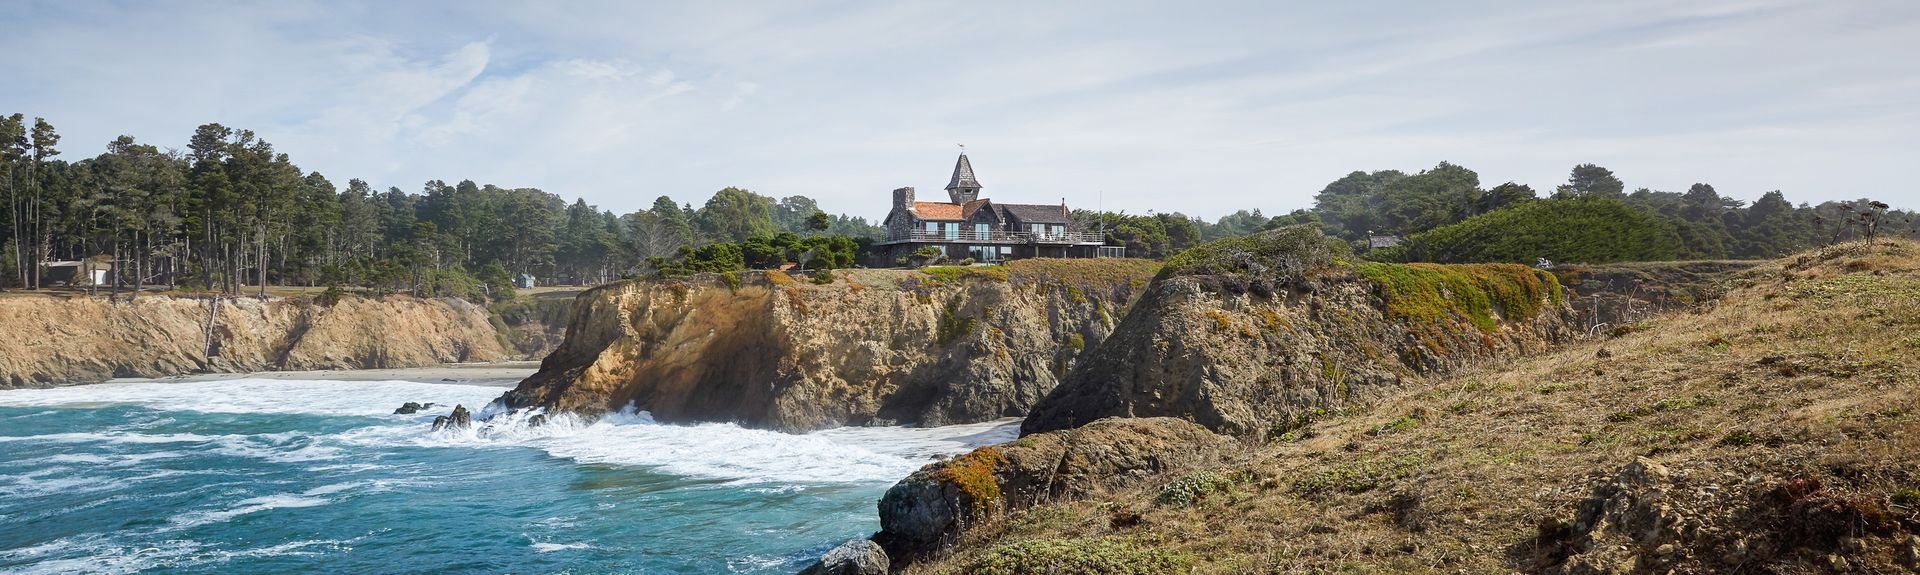 Mendocino, California, Estados Unidos